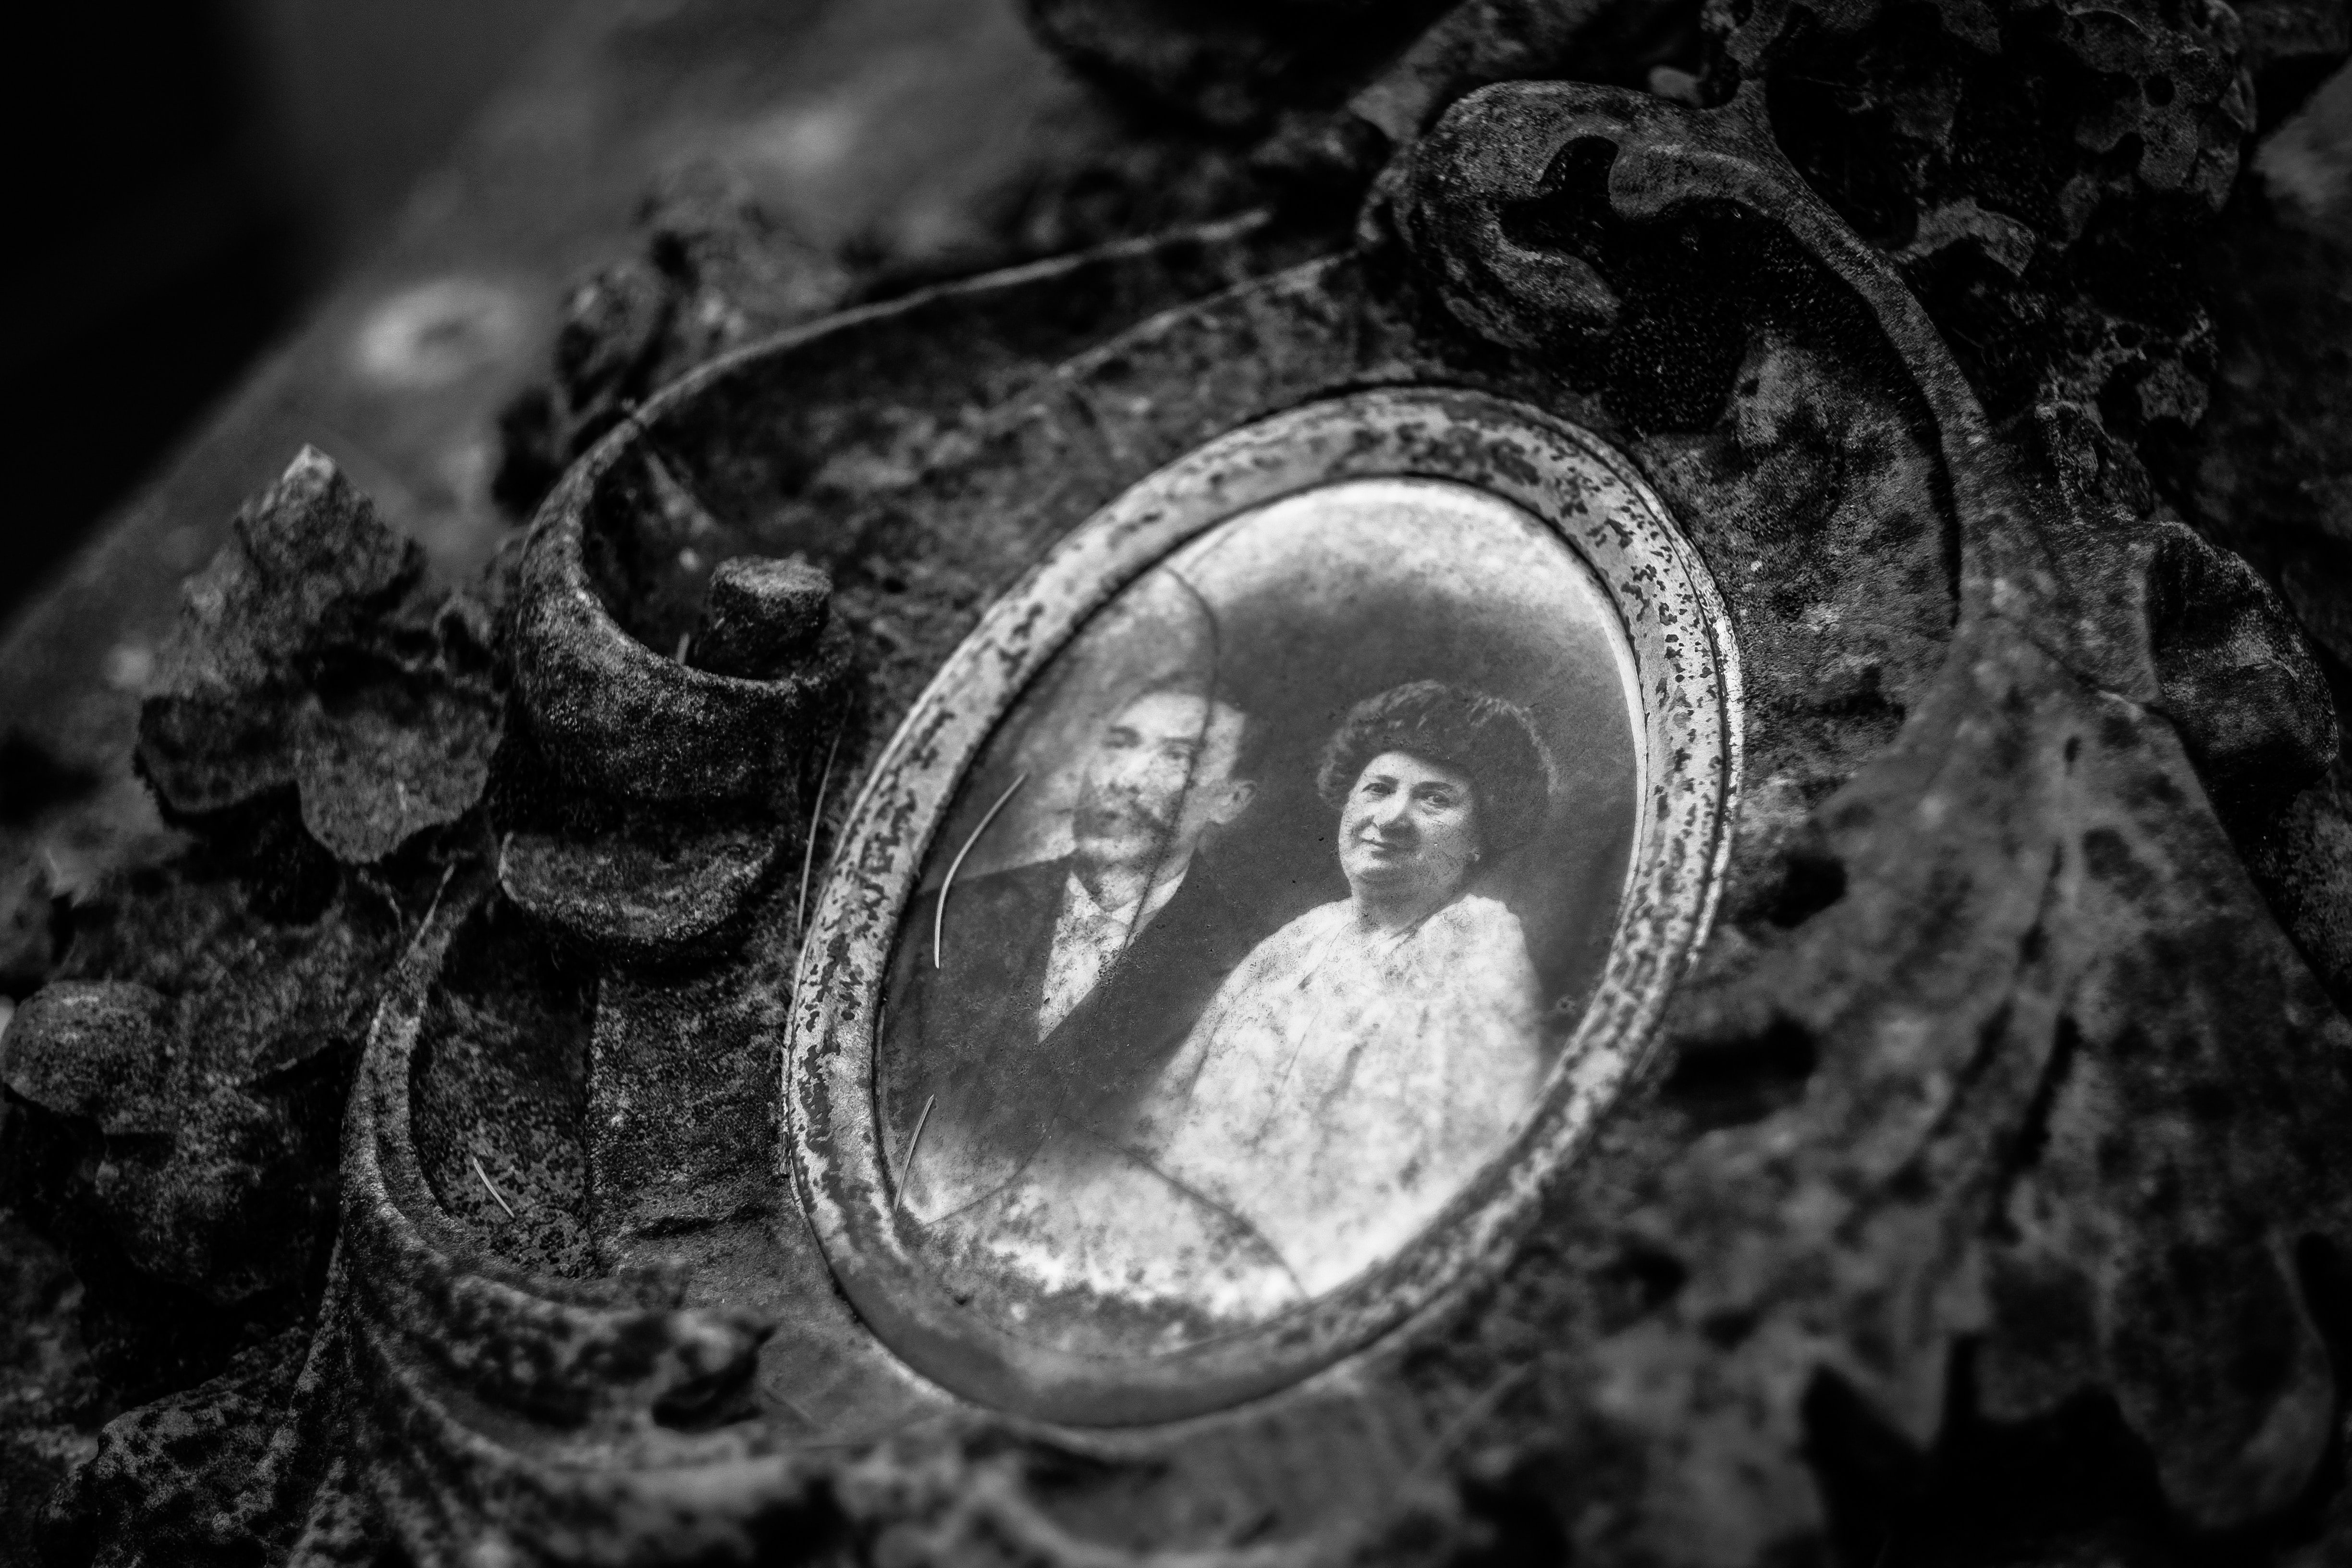 An old picture of a couple in a pendant | Source: Unsplash.com